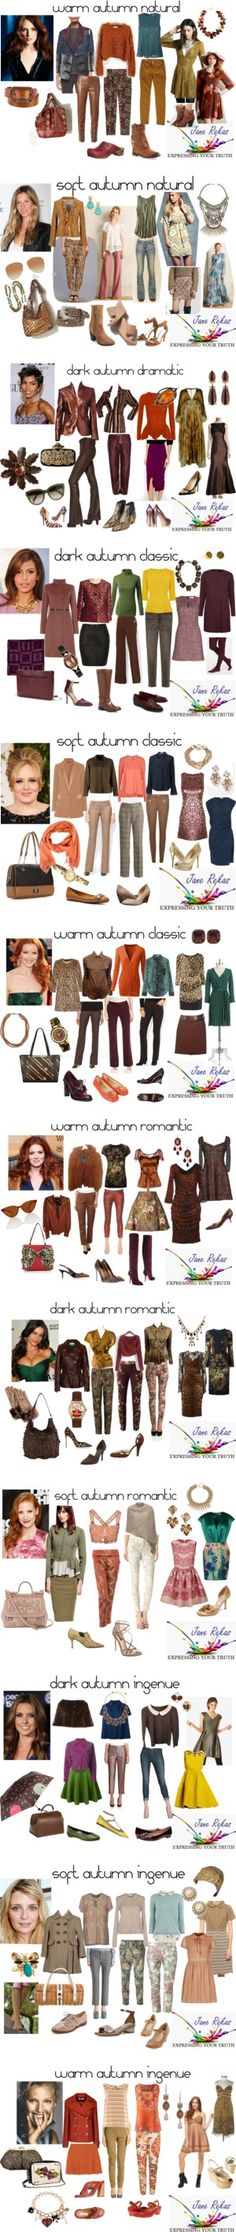 Autumn in McJimsey/Northrup Styles by expressingyourtruth on Polyvore featuring JULIANNE, Free People, Tina+Jo, Maiyet, True Religion, Shamask, Gucci, Campomaggi, Sanita and Momewear